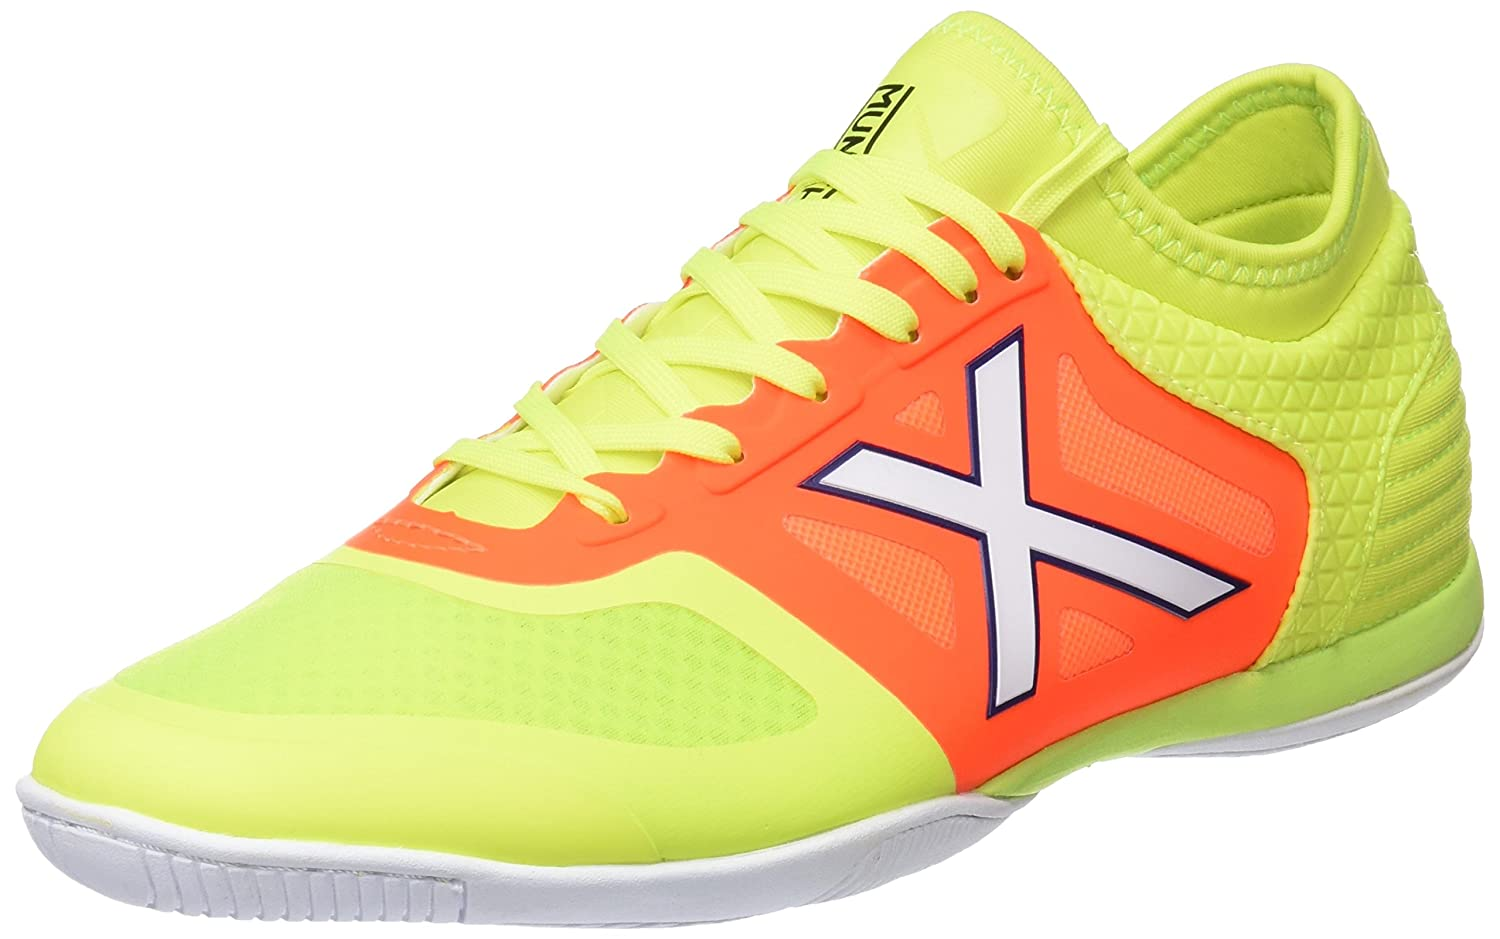 Eastbay Online Munich Unisex Adults' Tiga Football Fitness Shoes Recommend Cheap Buy Cheap Browse Sale Authentic Cheap 100% Authentic PhpdNR